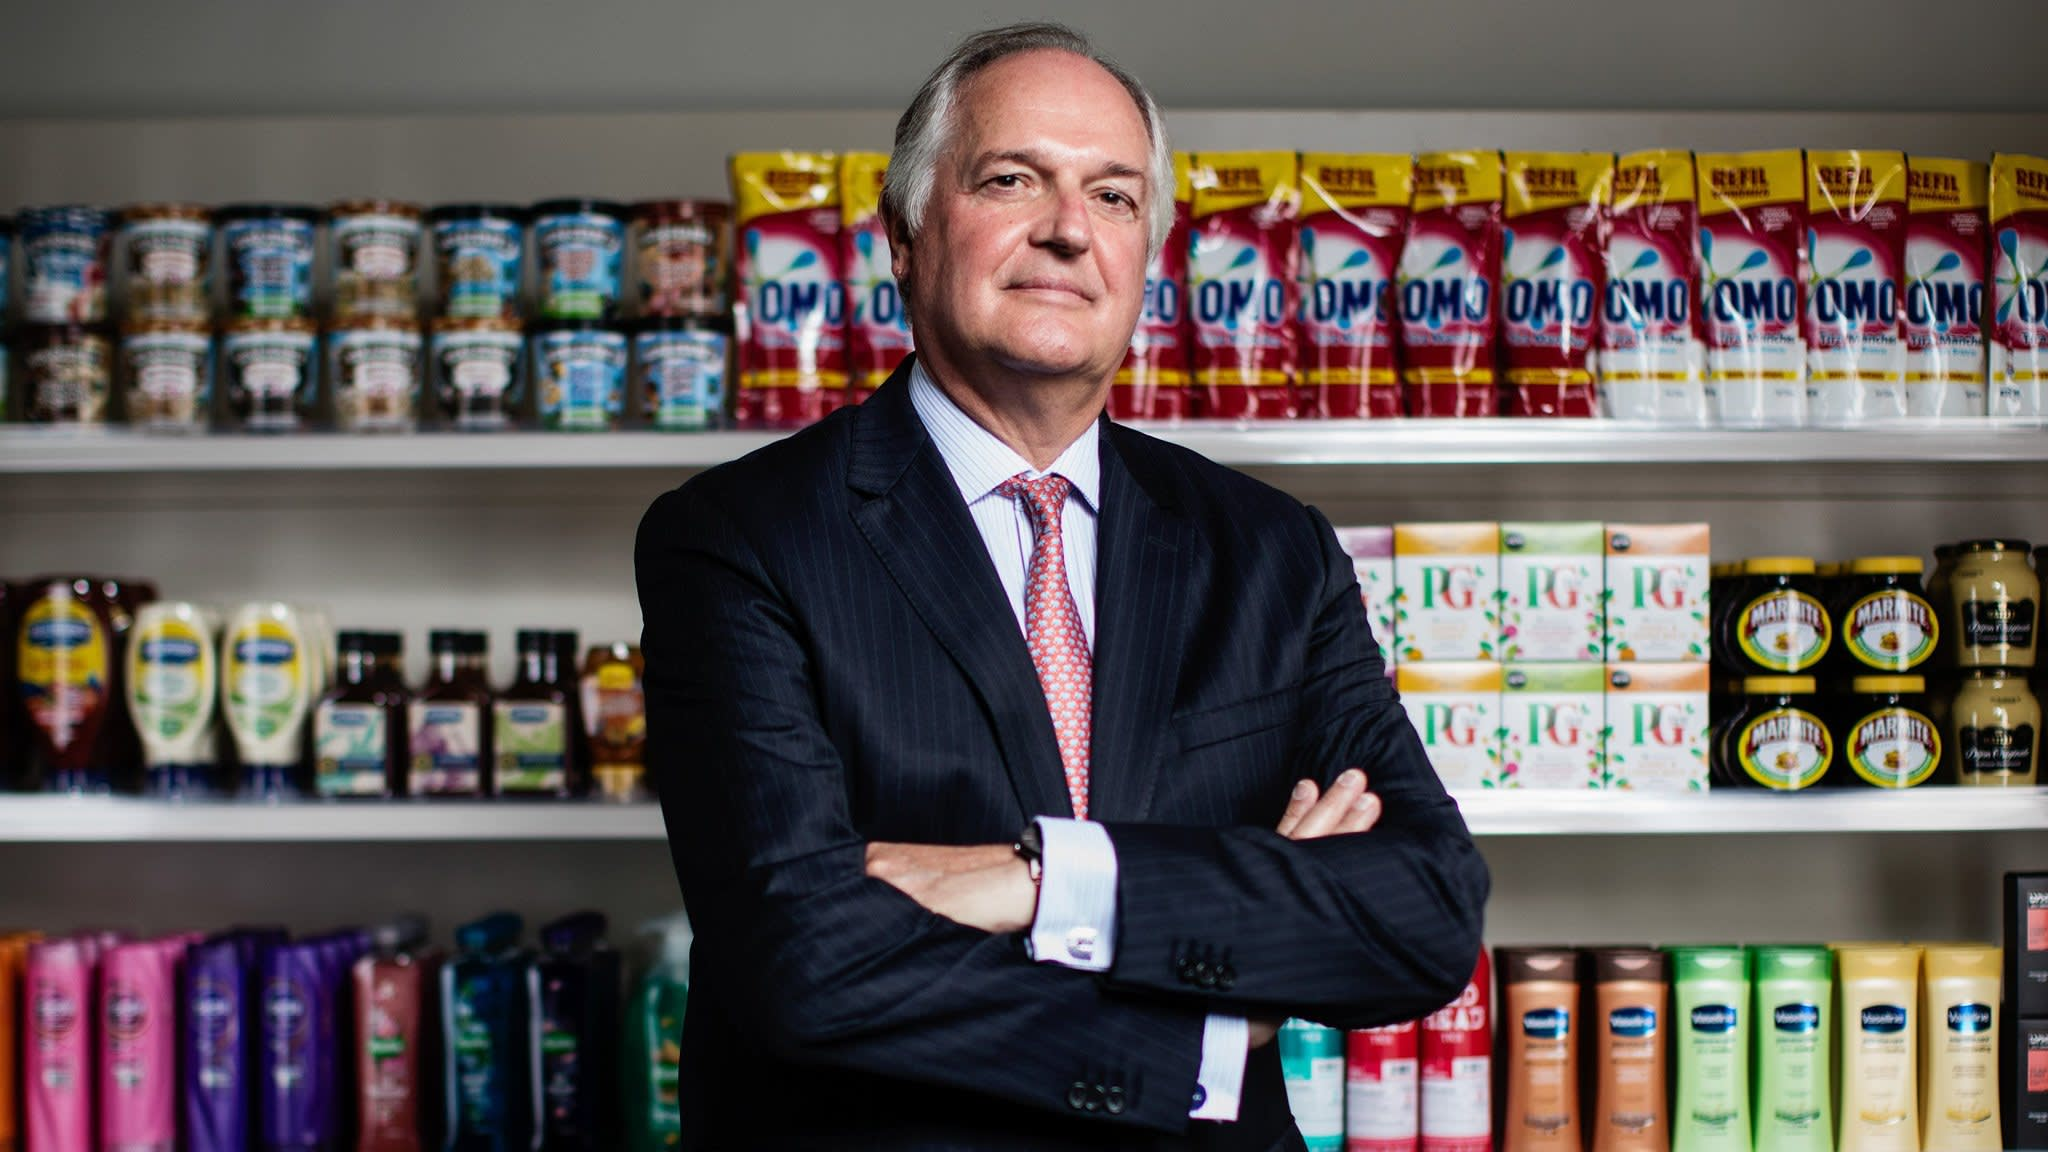 Unilever CEO Paul Polman to step down